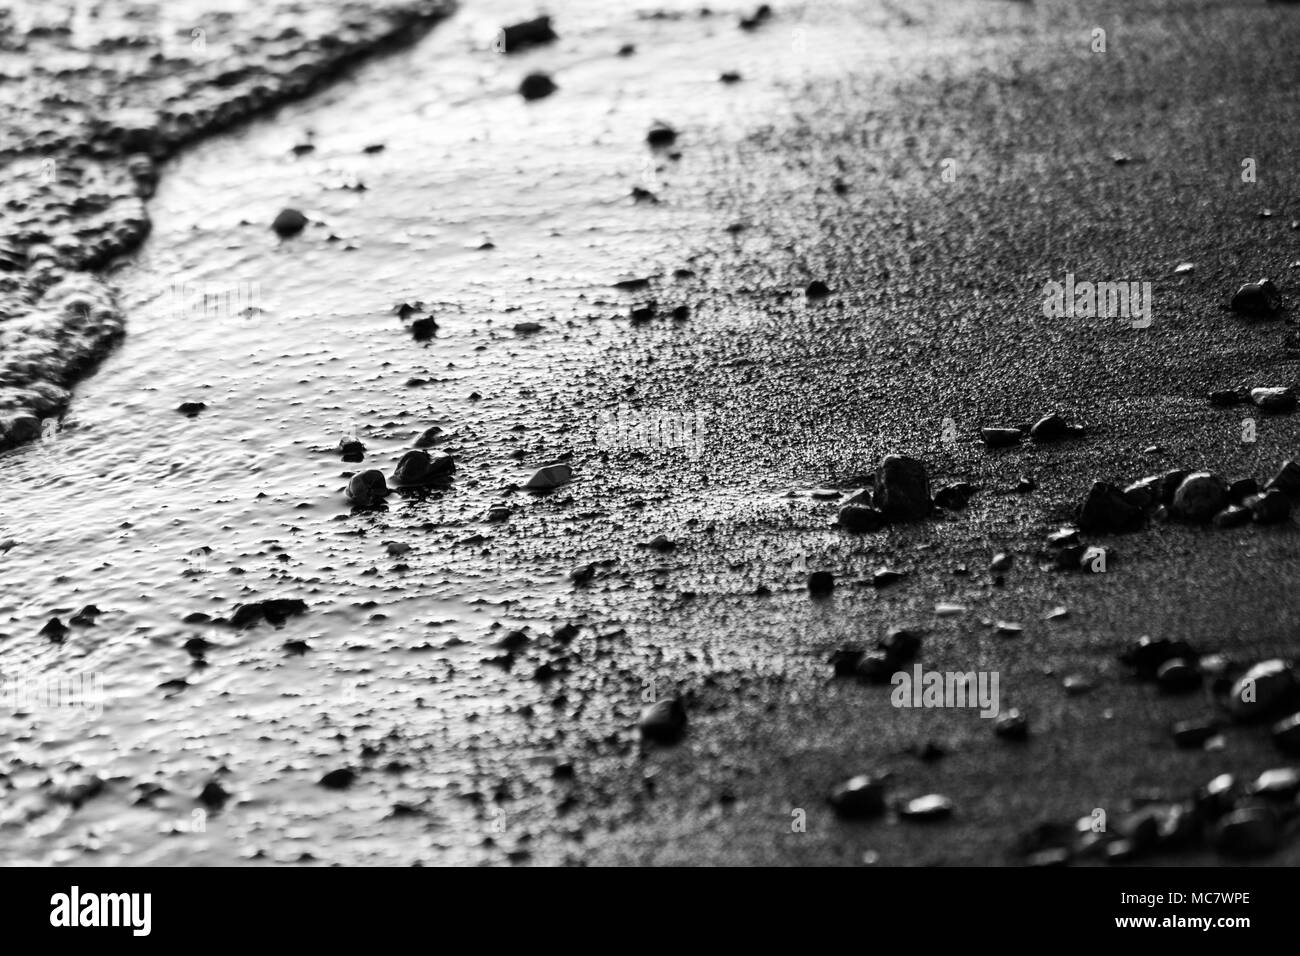 A close view of water on a lake shore at sunset, with details of sands and little round stones - Stock Image